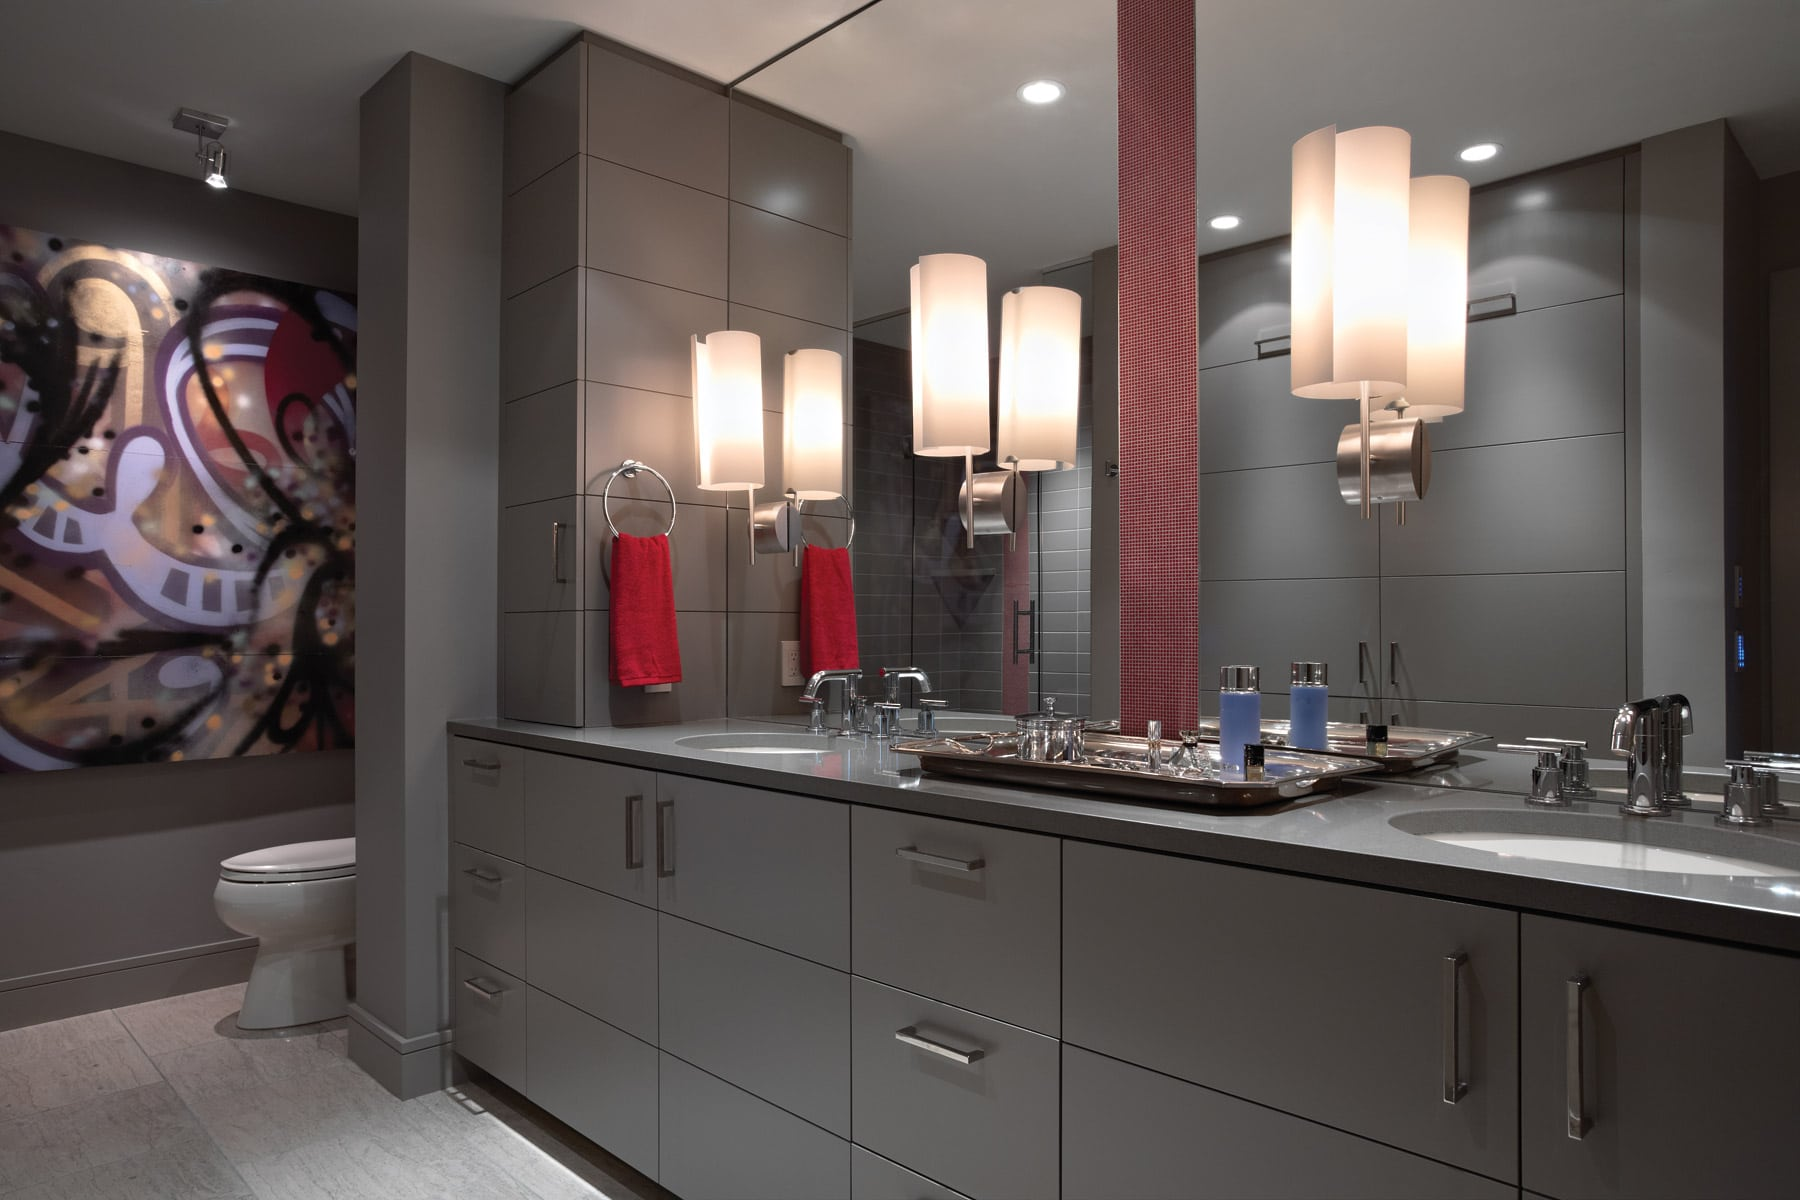 Exceptional-Condominium-Grey-Red-Master-Bath-Vanity-Minneapolis-interior-designer.jpeg